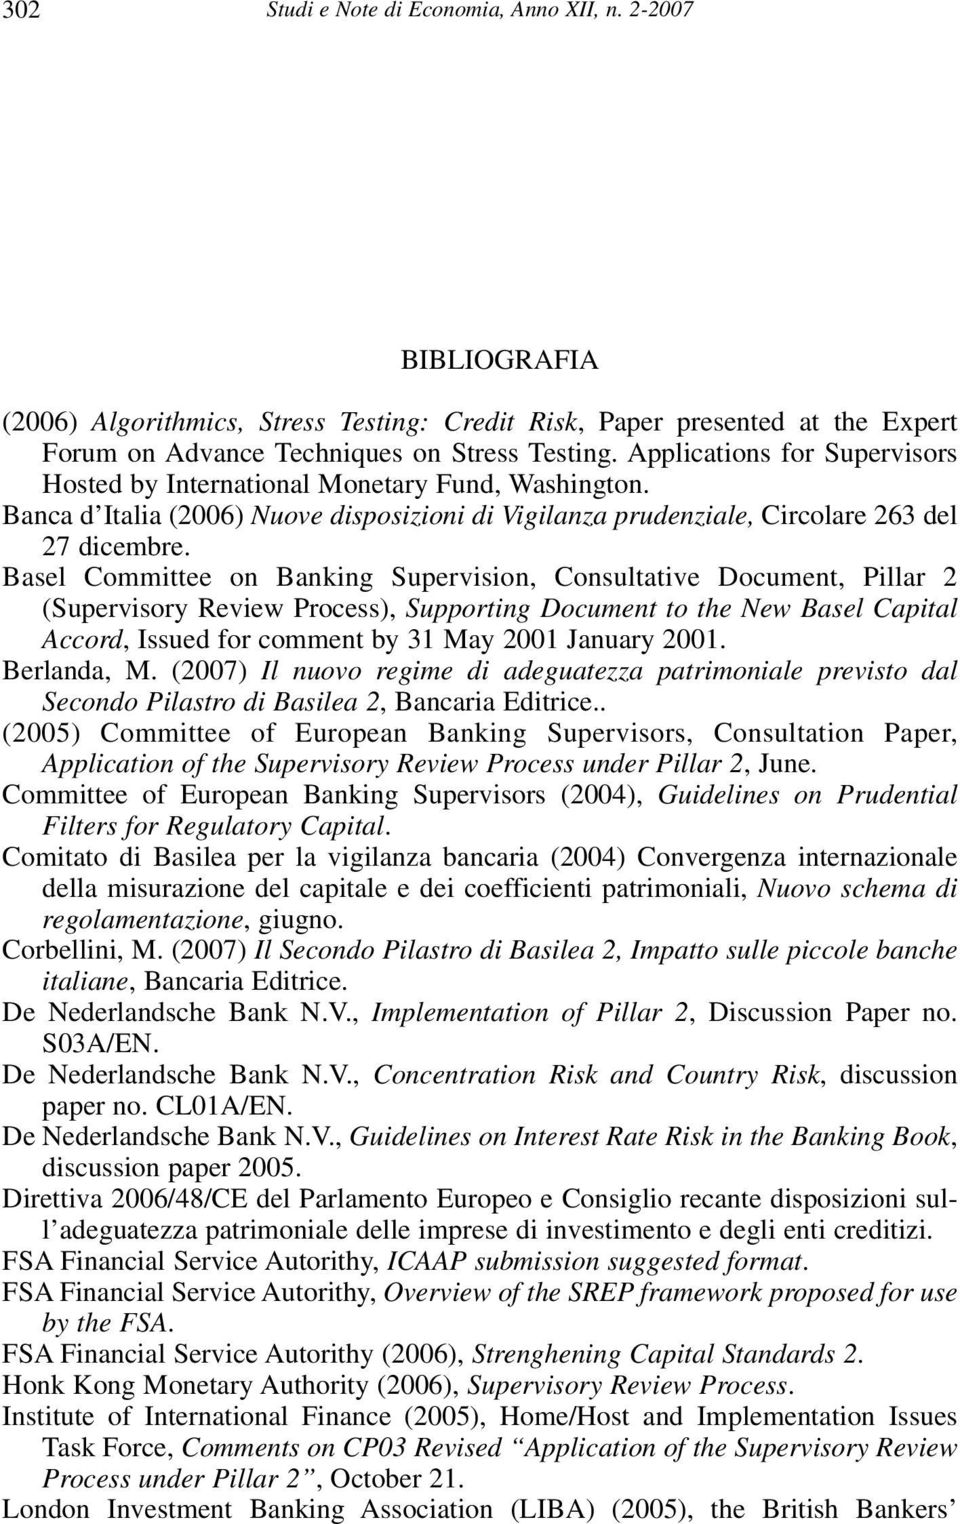 Basel Committee on Banking Supervision, Consultative Document, Pillar 2 (Supervisory Review Process), Supporting Document to the New Basel Capital Accord, Issued for comment by 31 May 2001 January